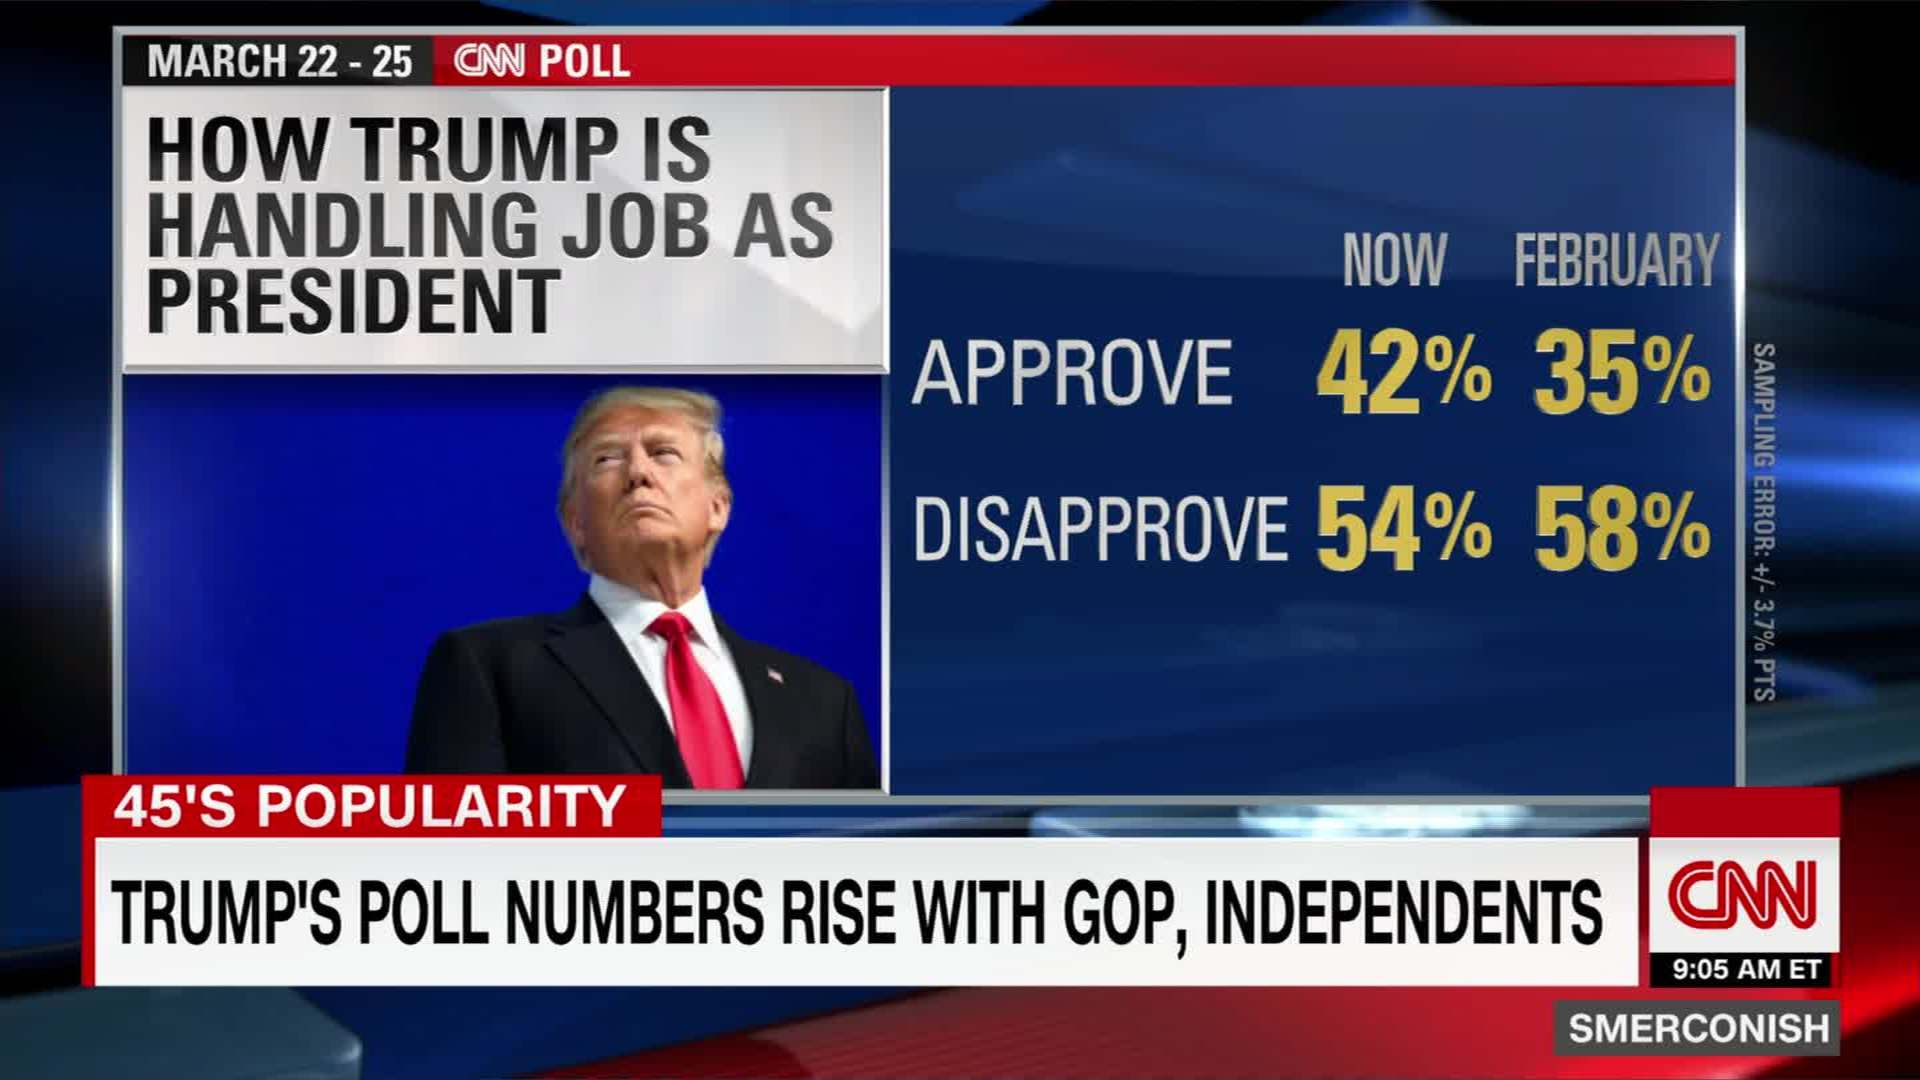 Trump's poll numbers rise (!)